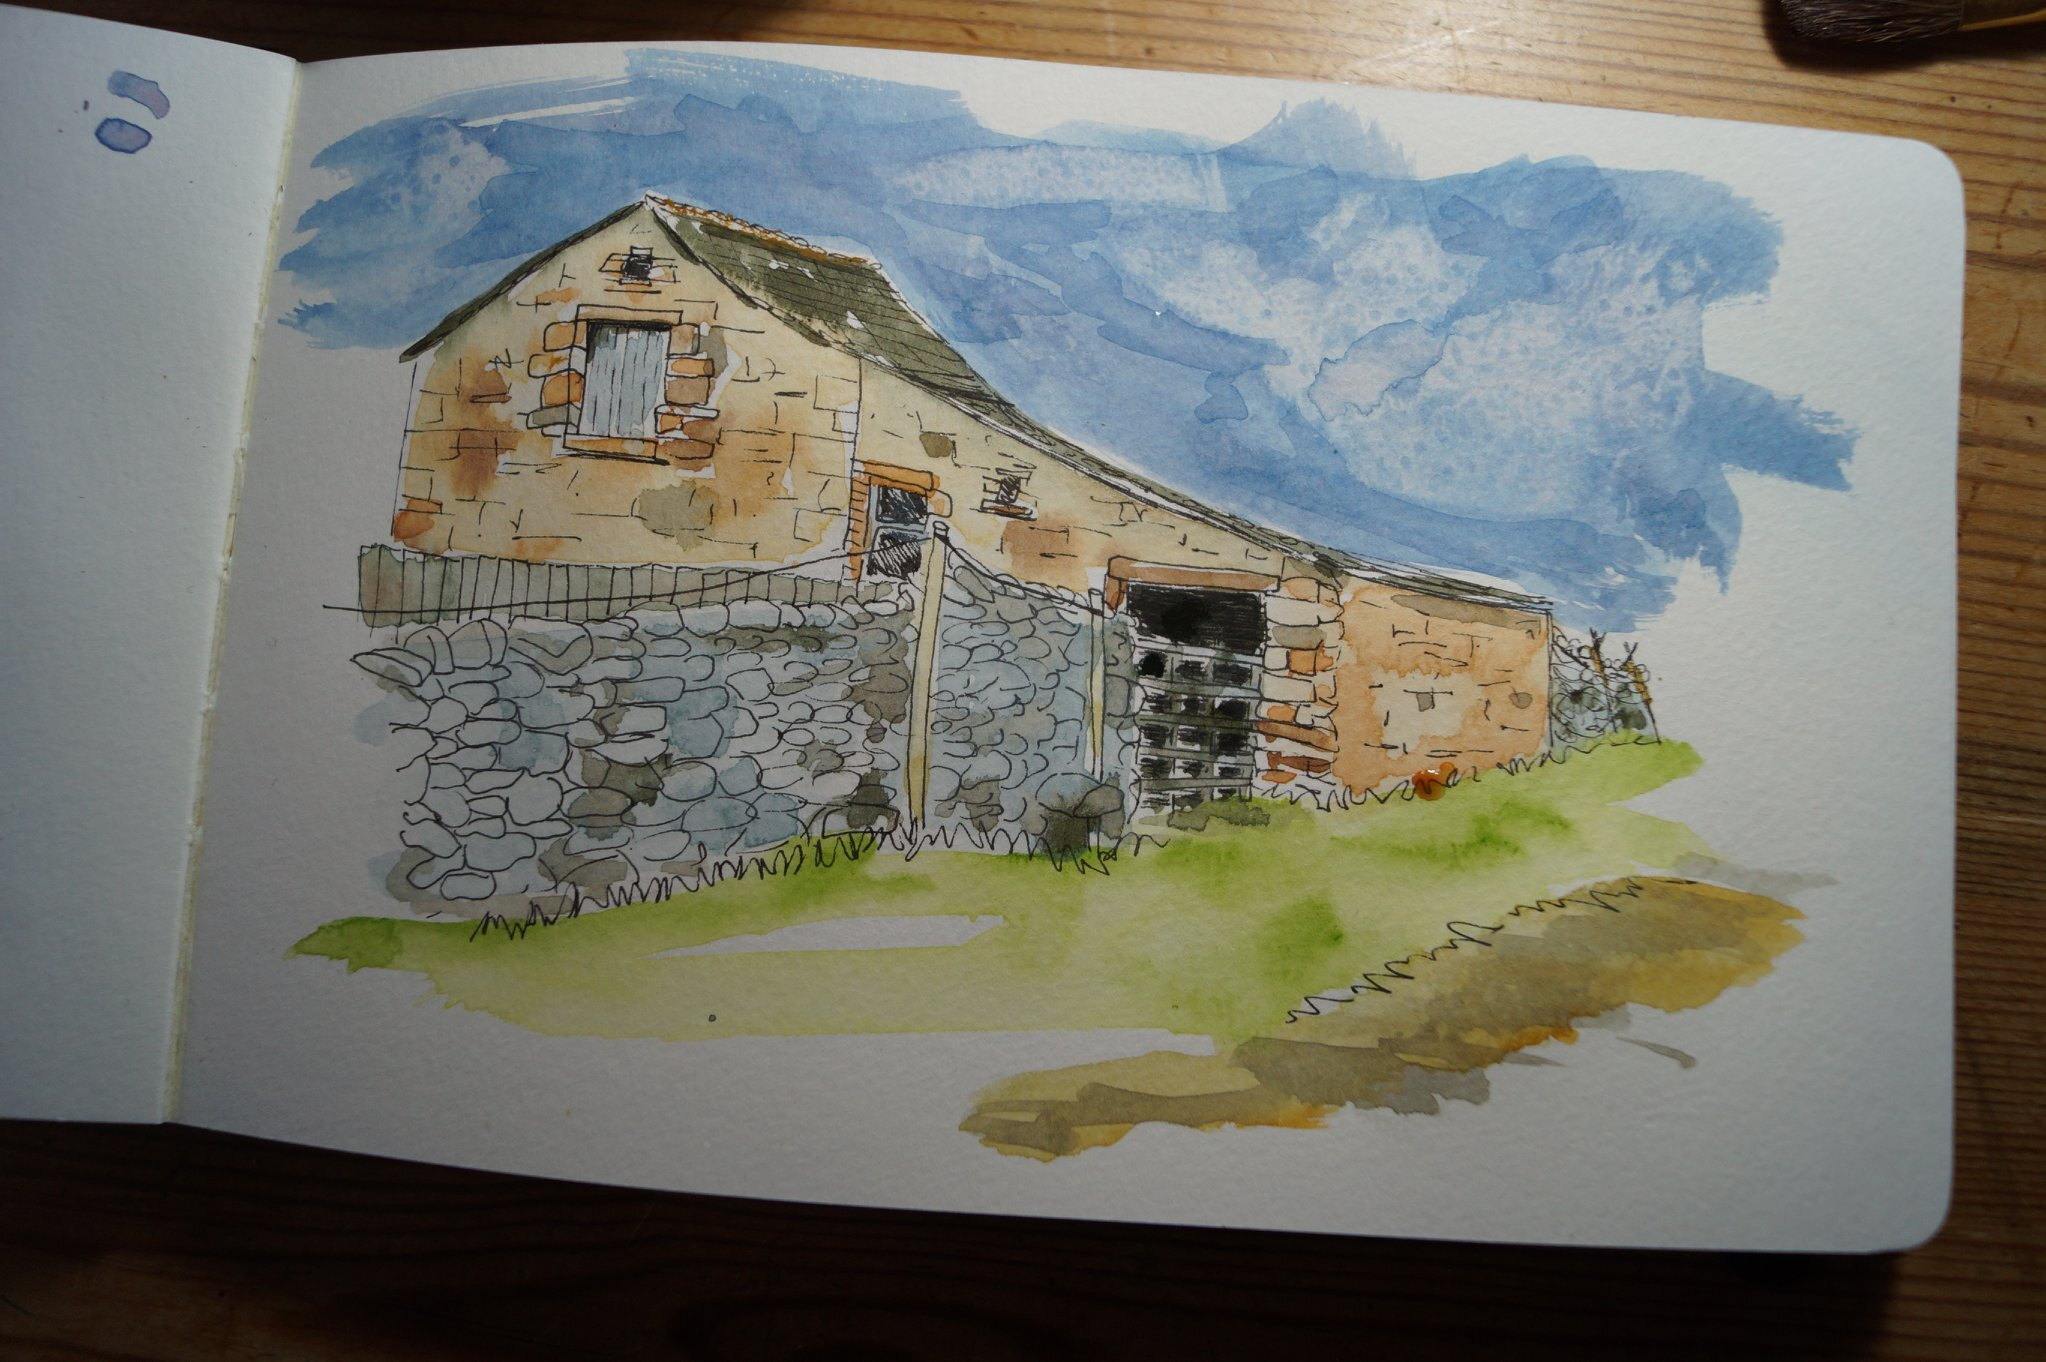 We do a lot of our walks in the Dales where I am SPOILT for choice - so many barns, views and stone walls to choose from - so thought I'd share a quick watercolour and ink of a barn on the Settle/Long Preston parish border - Hawthorn Spellweaver